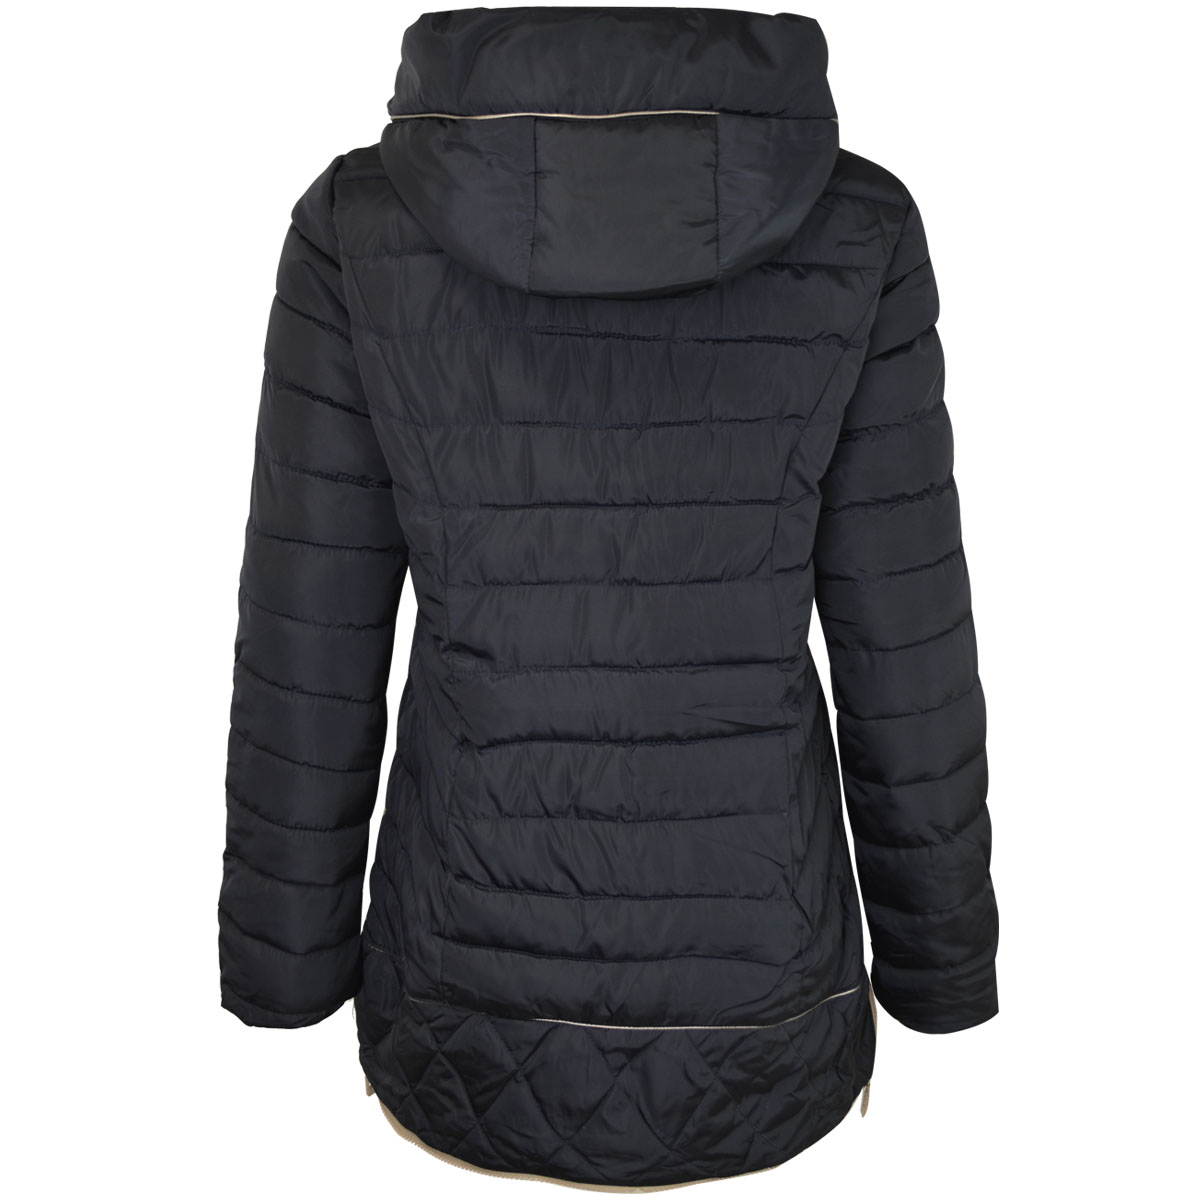 reasonarchivessx.cf: padded jacket women. From The Community. Amazon Try Prime All Liran Women's Winter Warm Wool Cotton-Padded Coat Parka Long Outwear Jacket Asian Size. by Liran. $ - $ $ 28 $ 33 07 Prime. FREE Shipping on eligible orders. Some sizes/colors are Prime eligible.